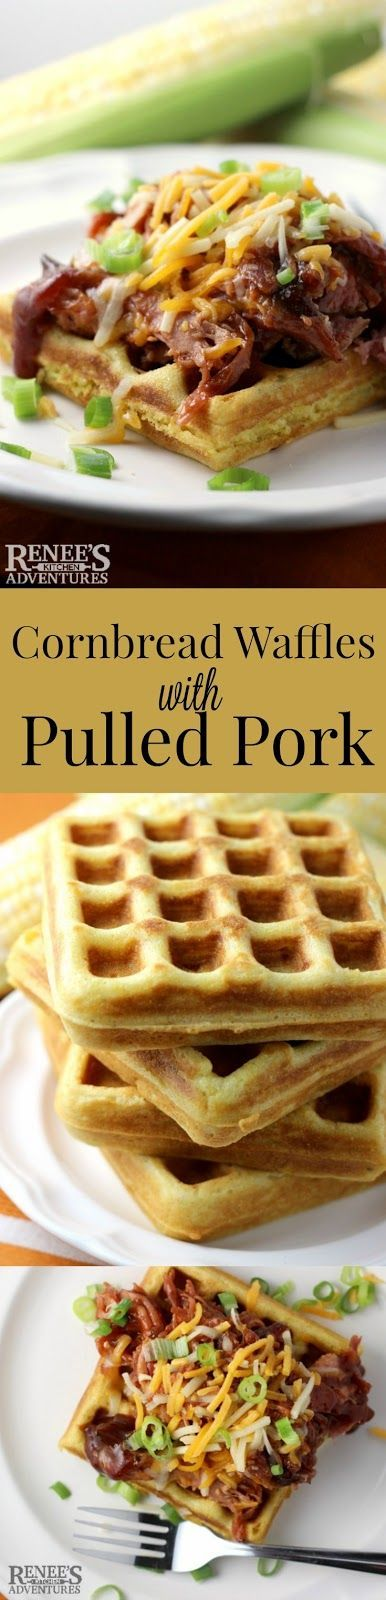 Cornbread Waffles with Pulled Pork   by Renee's Kitchen Adventures is an easy recipe for cornbread waffles topped with store-bought pulled pork for a fun and easy dinner idea!  #SundaySupper